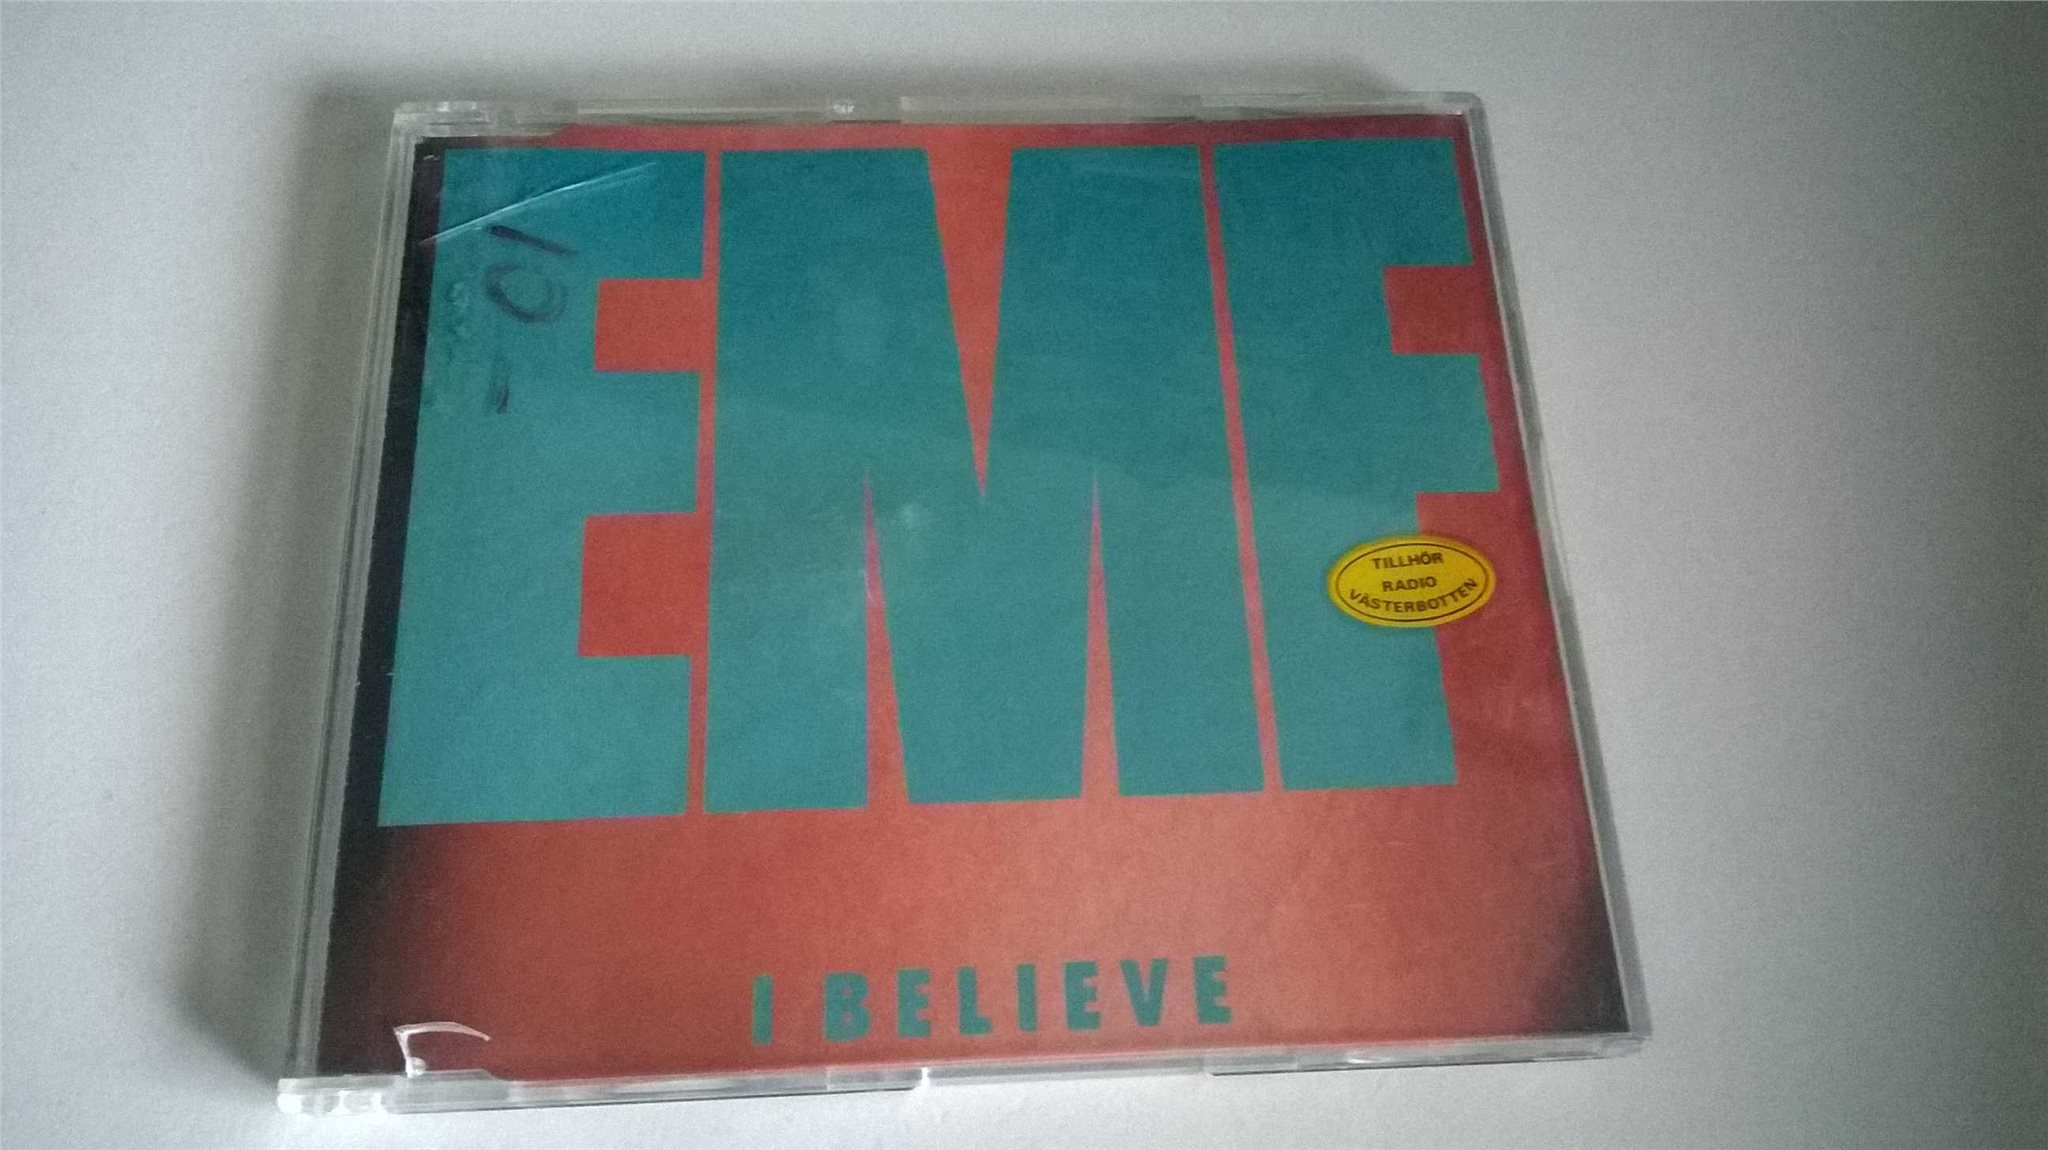 EMF - I Believe, CD